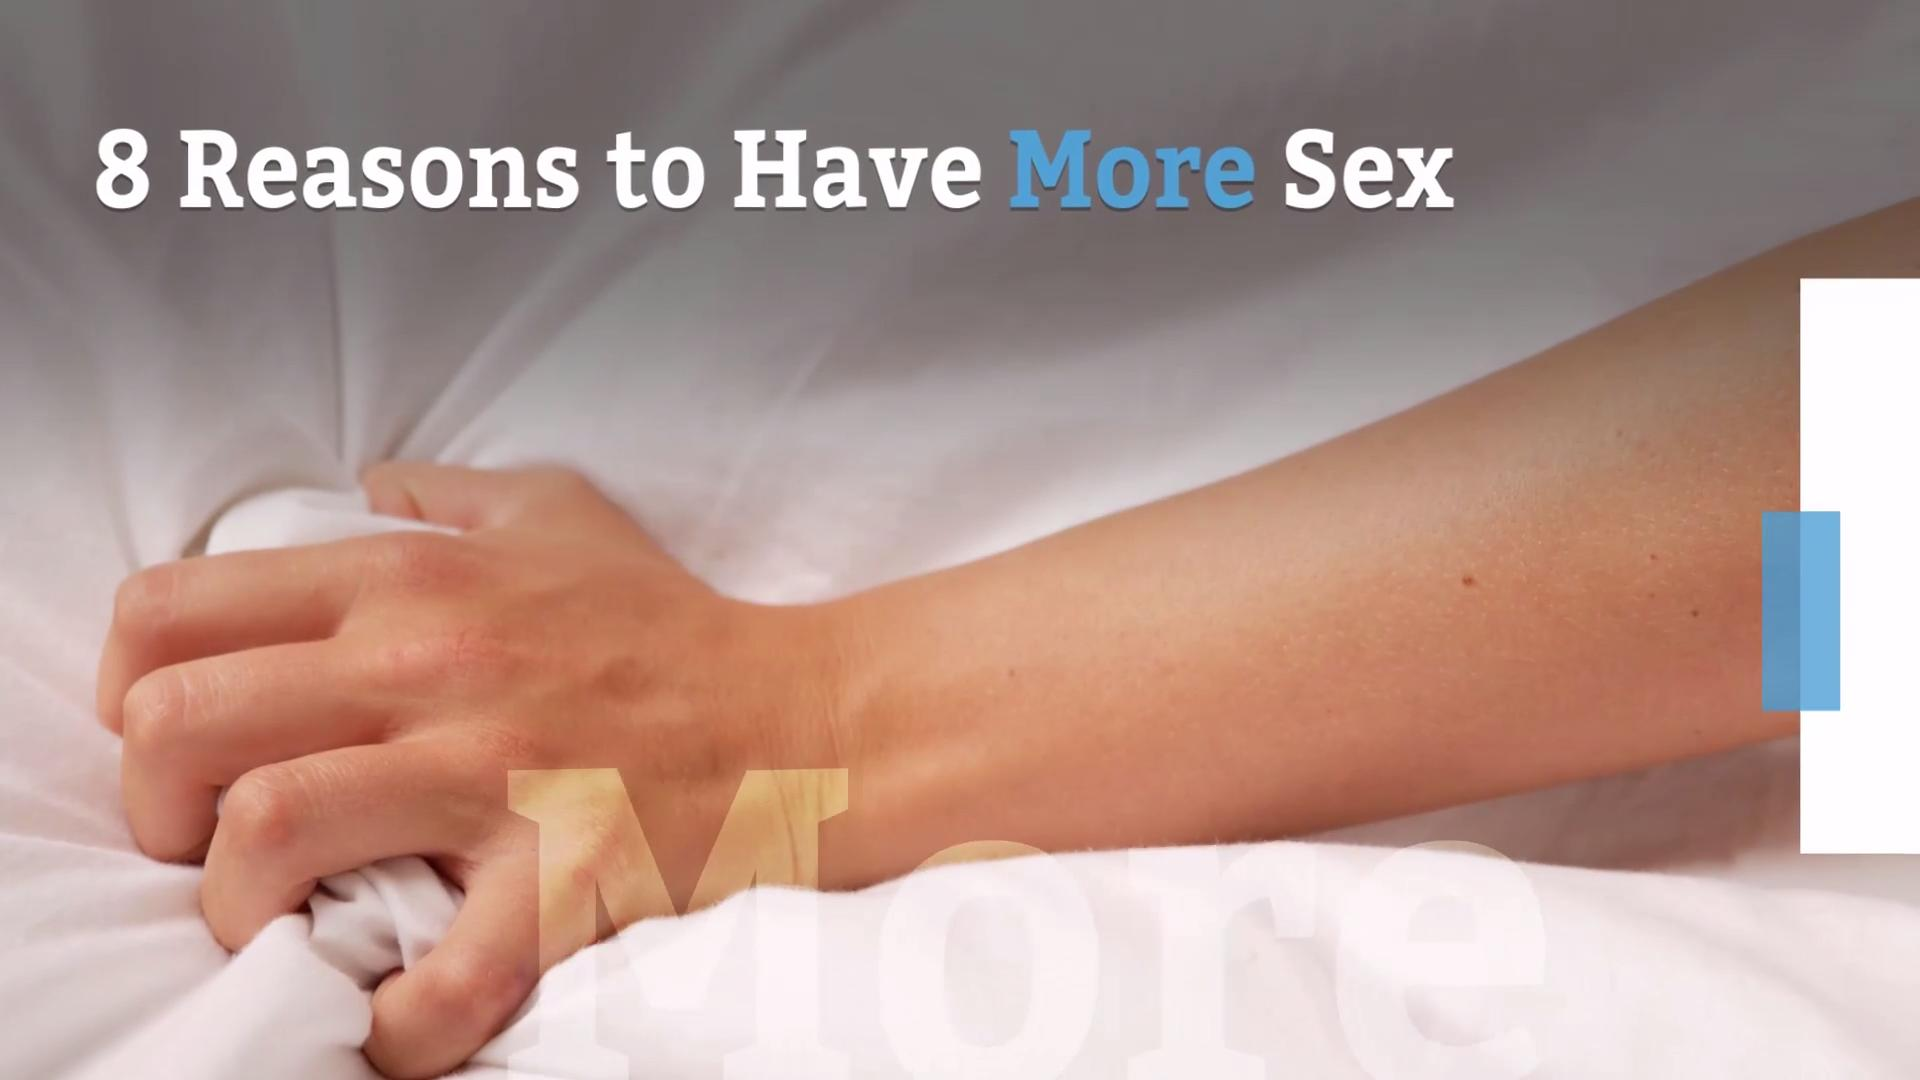 Sex helps you sleep